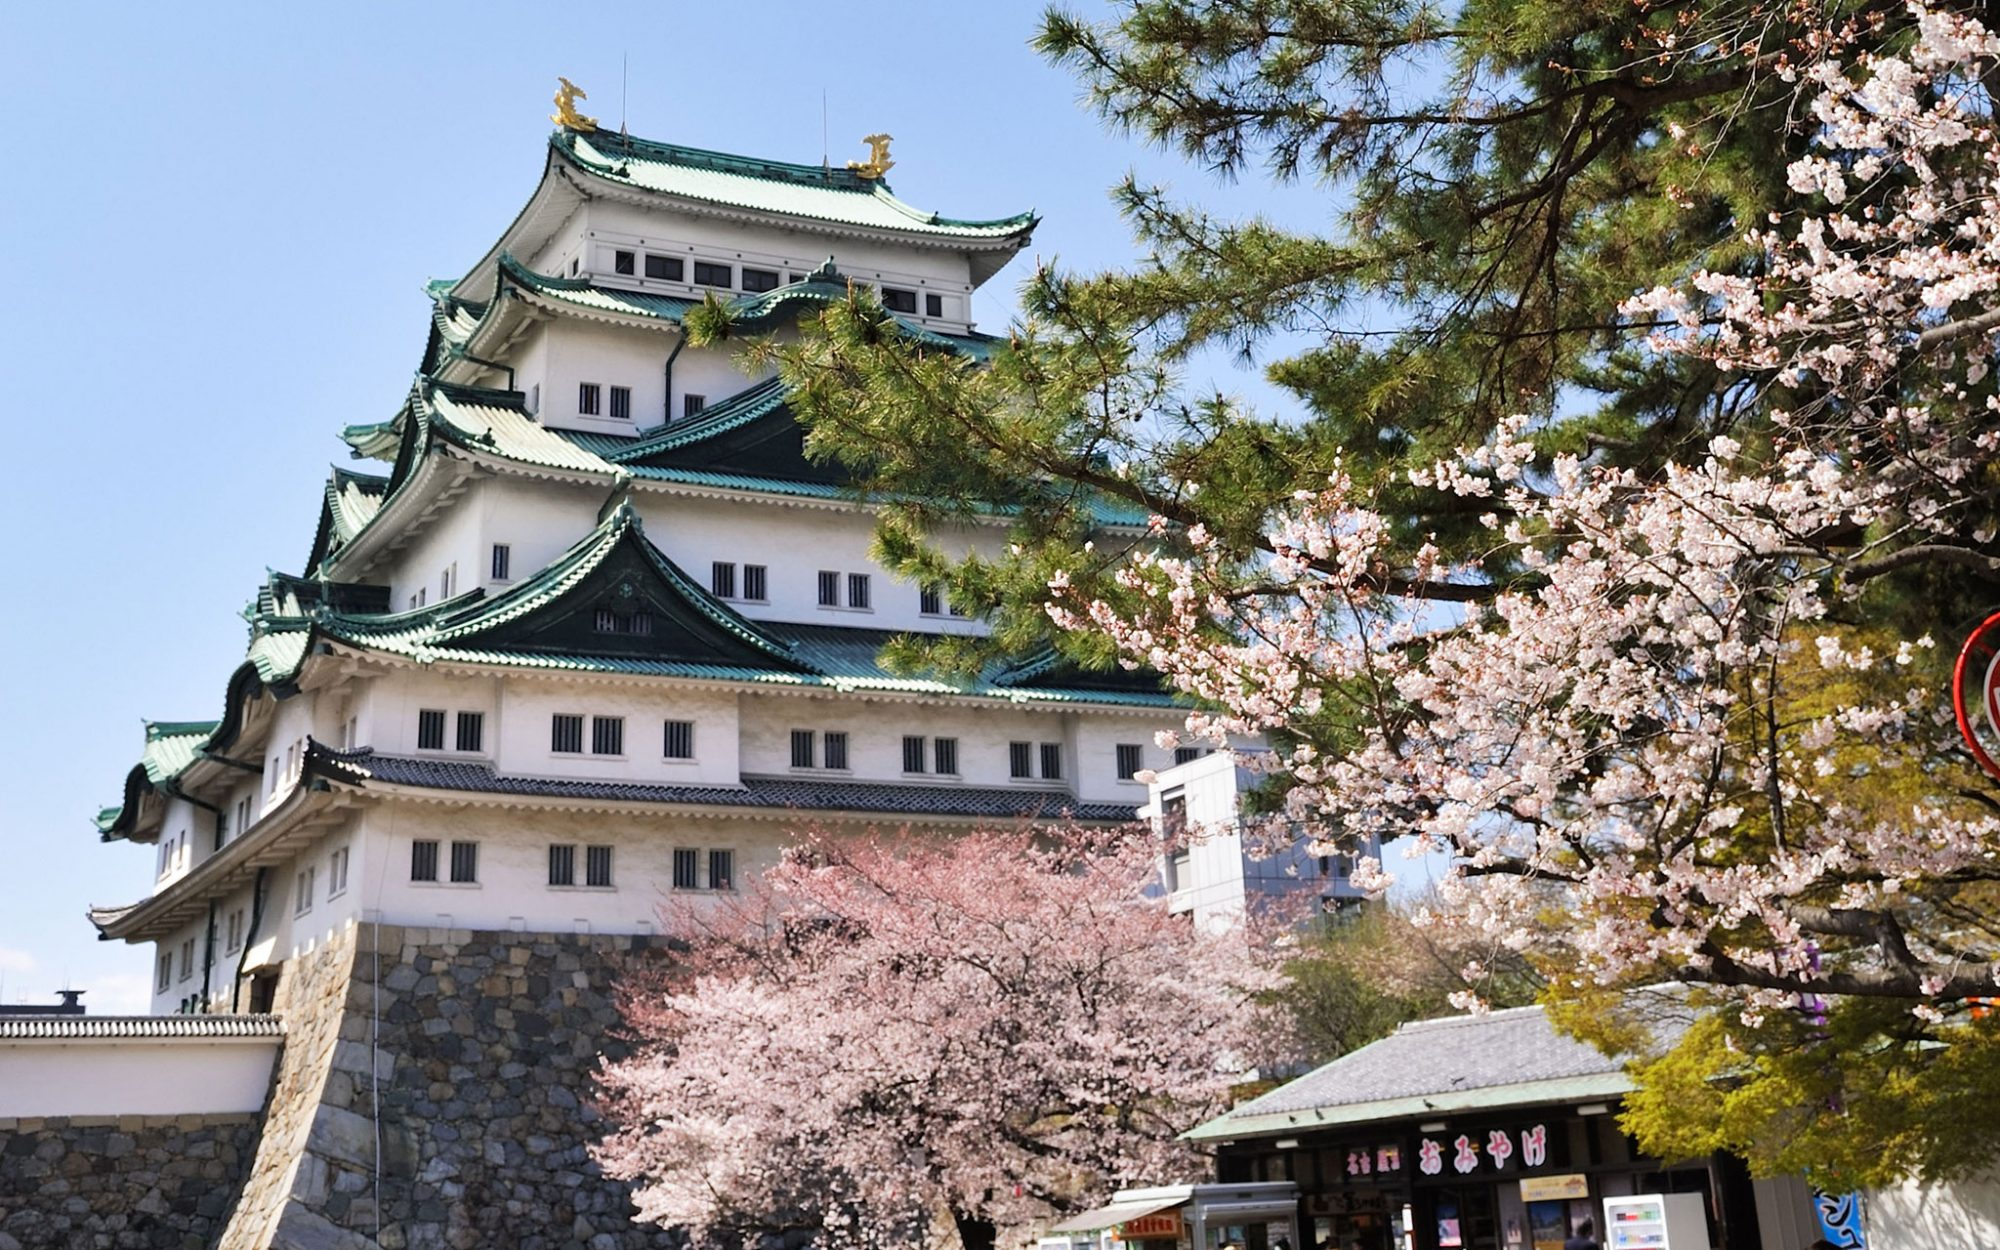 World's Most-Visited Castles: No. 15 Nagoya Castle, Japan